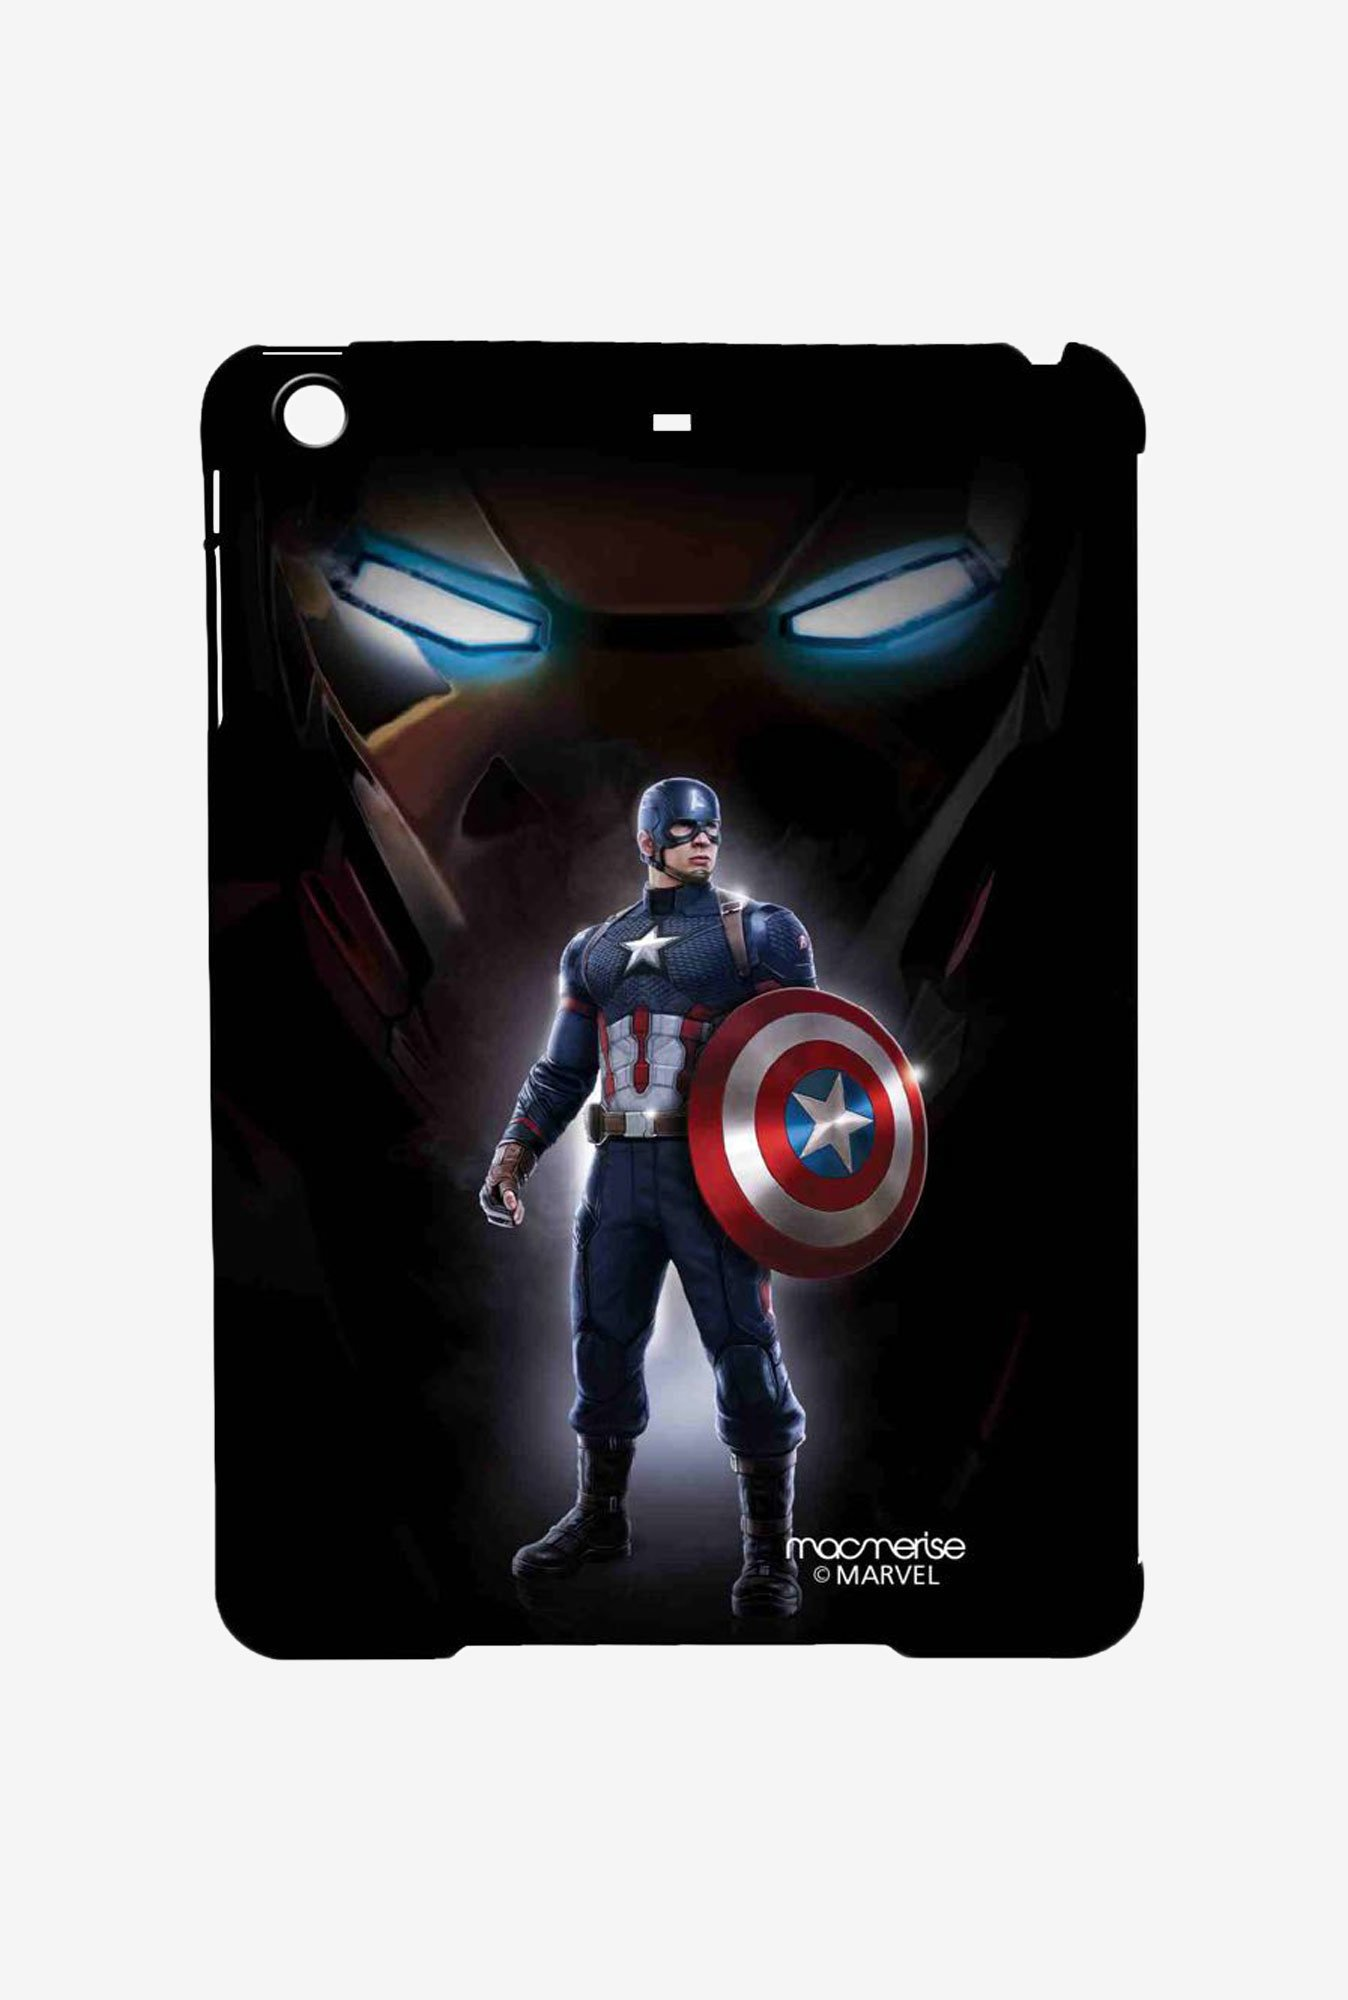 Macmerise Watchful Captain America Pro Case for iPad Air 2